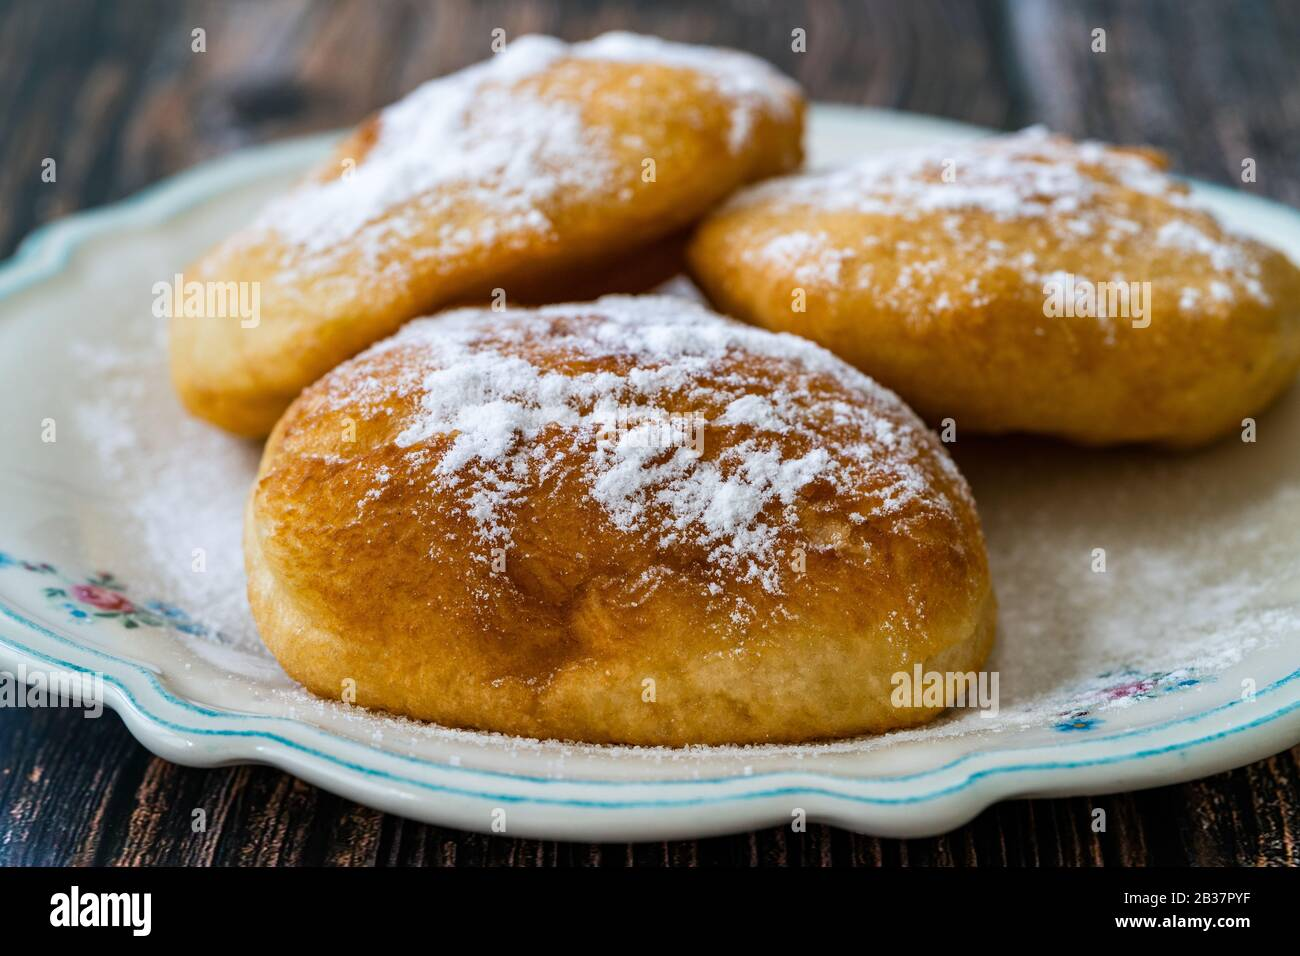 Mandazi Is A Slightly Sweet East African Street Food Spicy Airy Yeast Doughnut Dough Made With Coconut Milk Flavored With Cardamom And Grated Fresh Stock Photo Alamy